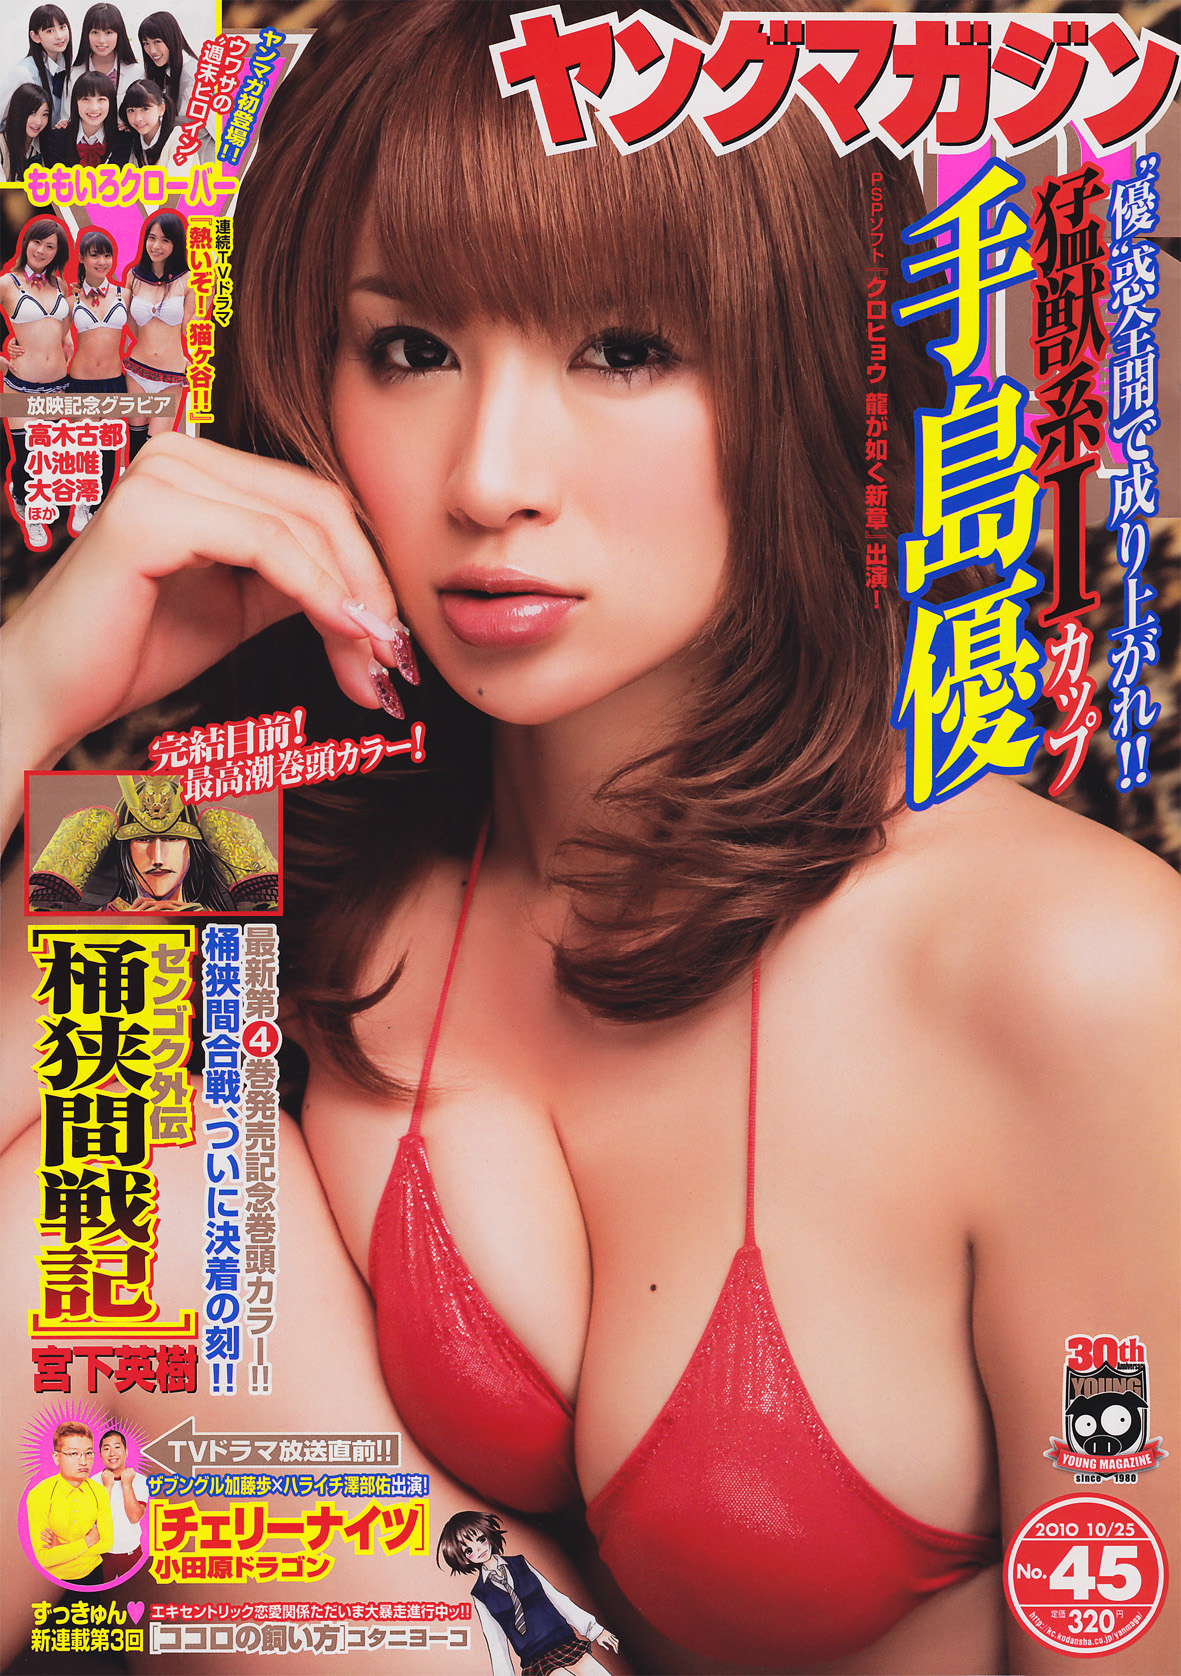 Young Magazine 2010 No.45 young 08110